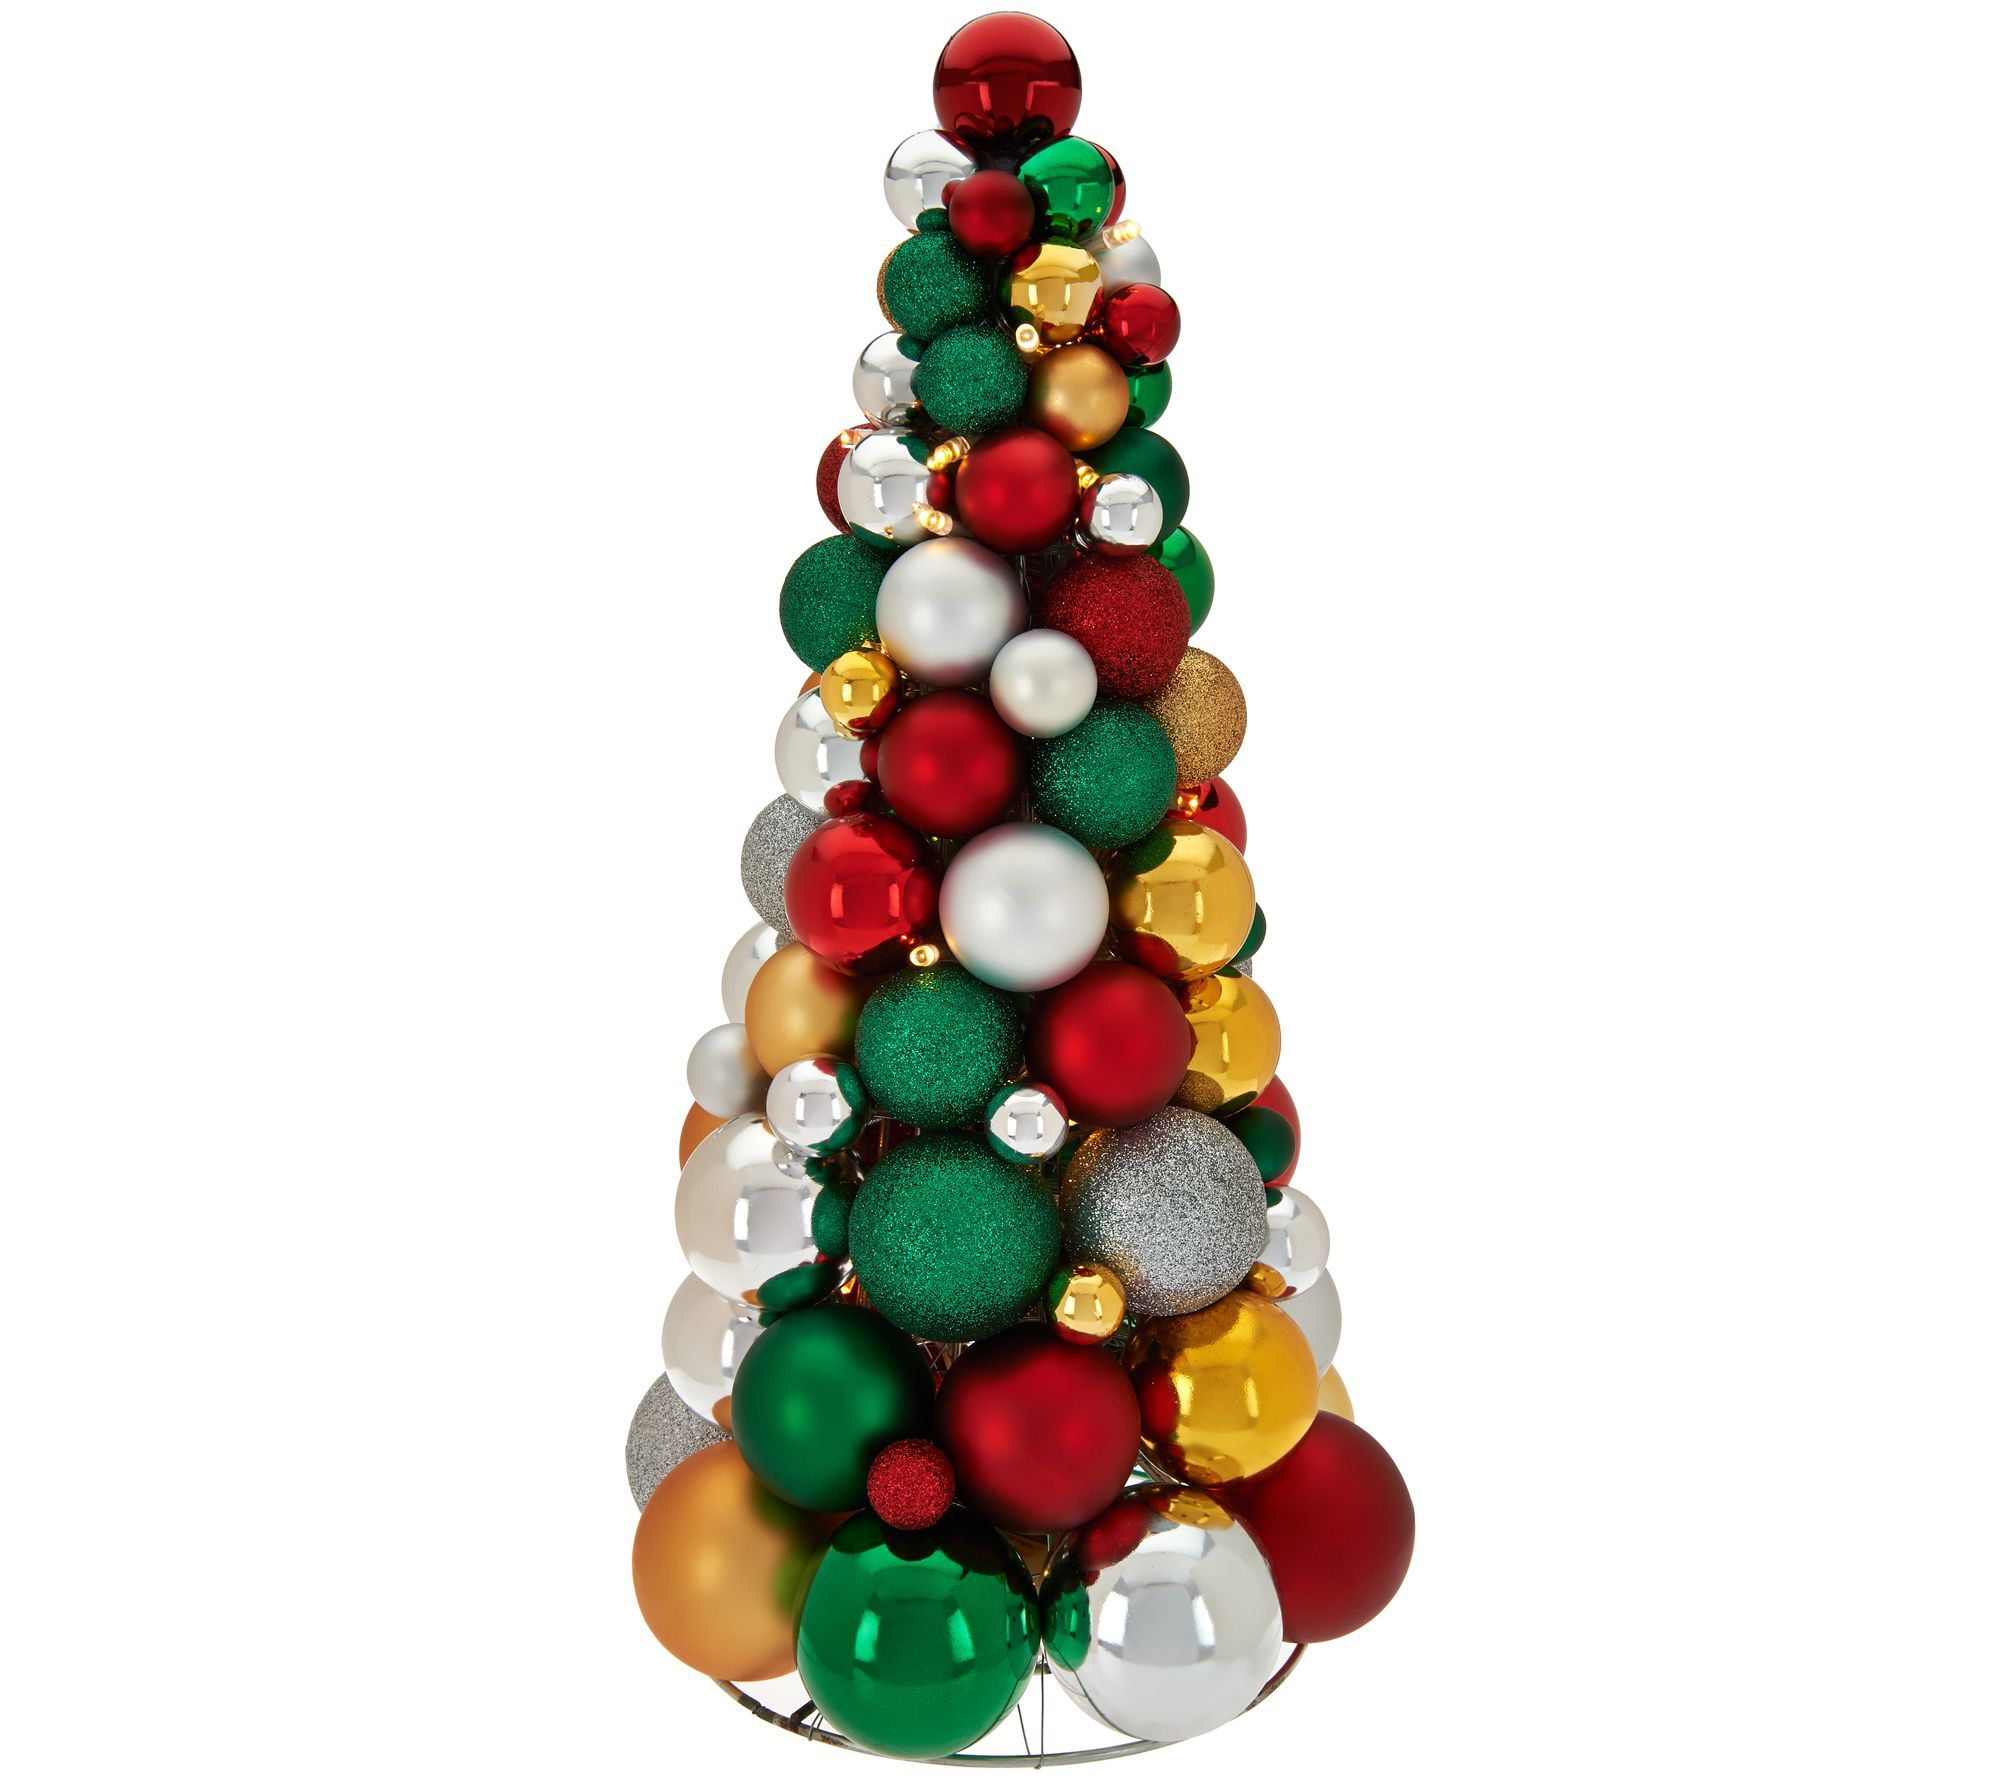 16 Illuminated Ornament Tabletop Tree By Valerie Ornaments Ornament Wreath Table Top